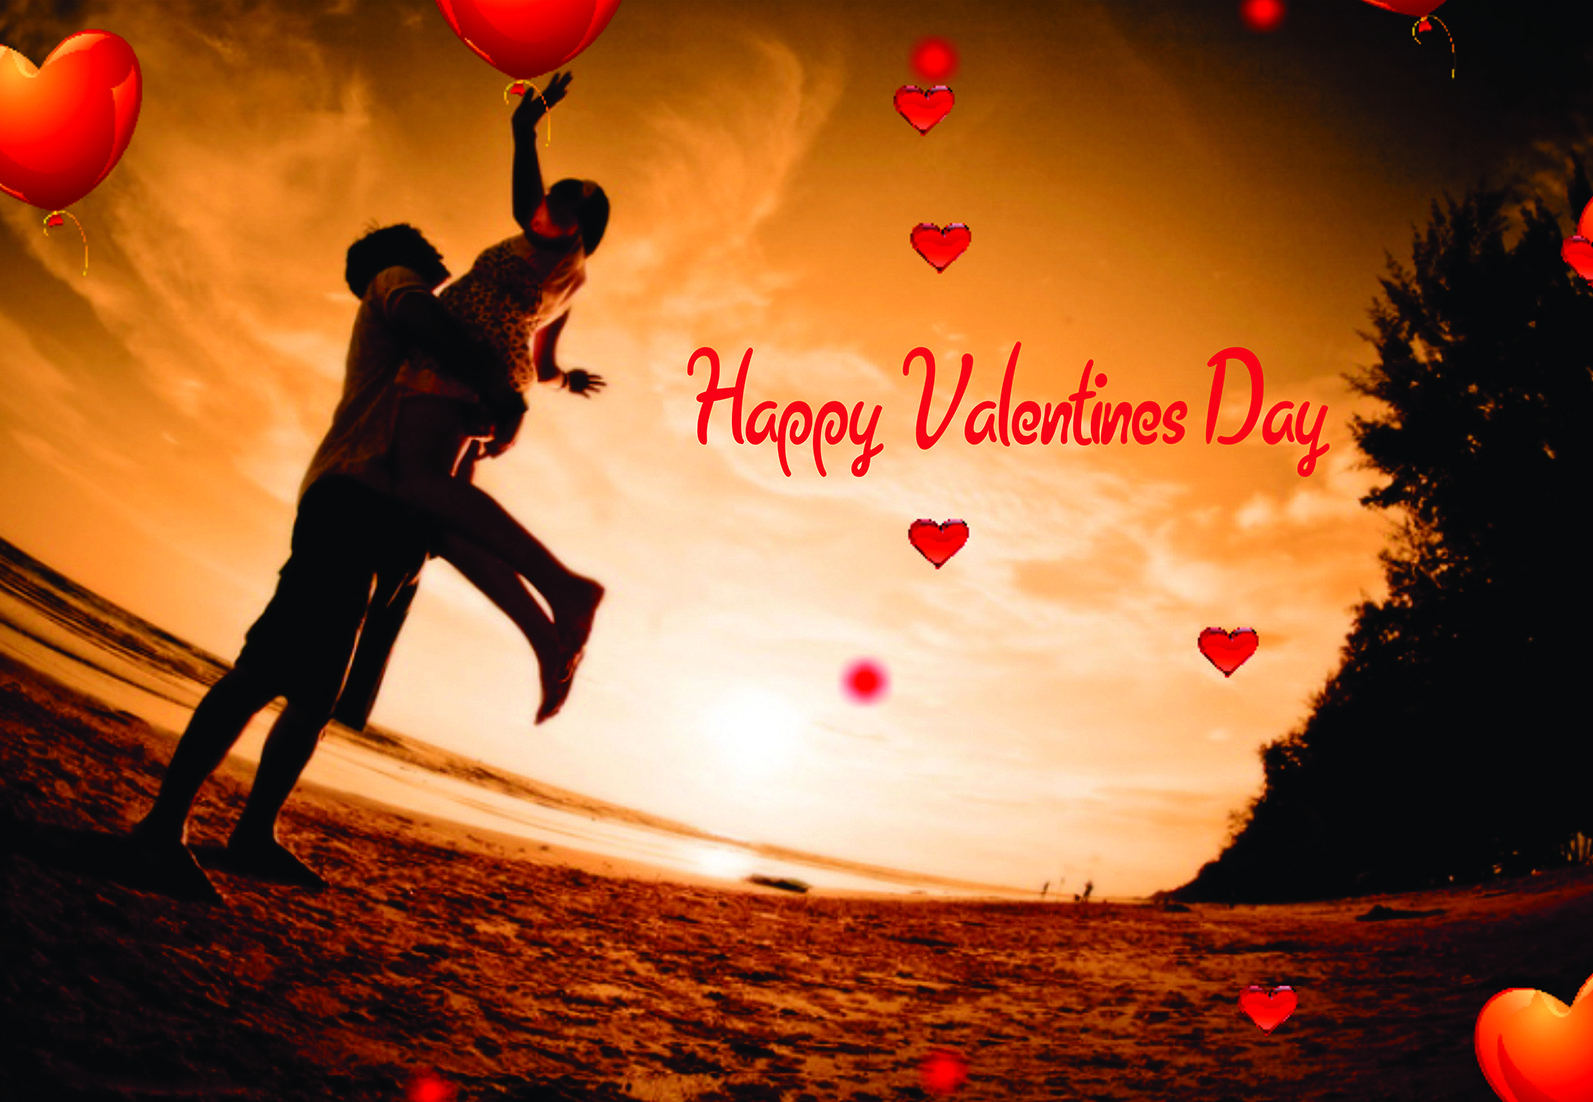 cute Love Wallpaper Hd Mobile : Valentine s Day HD Wallpaper